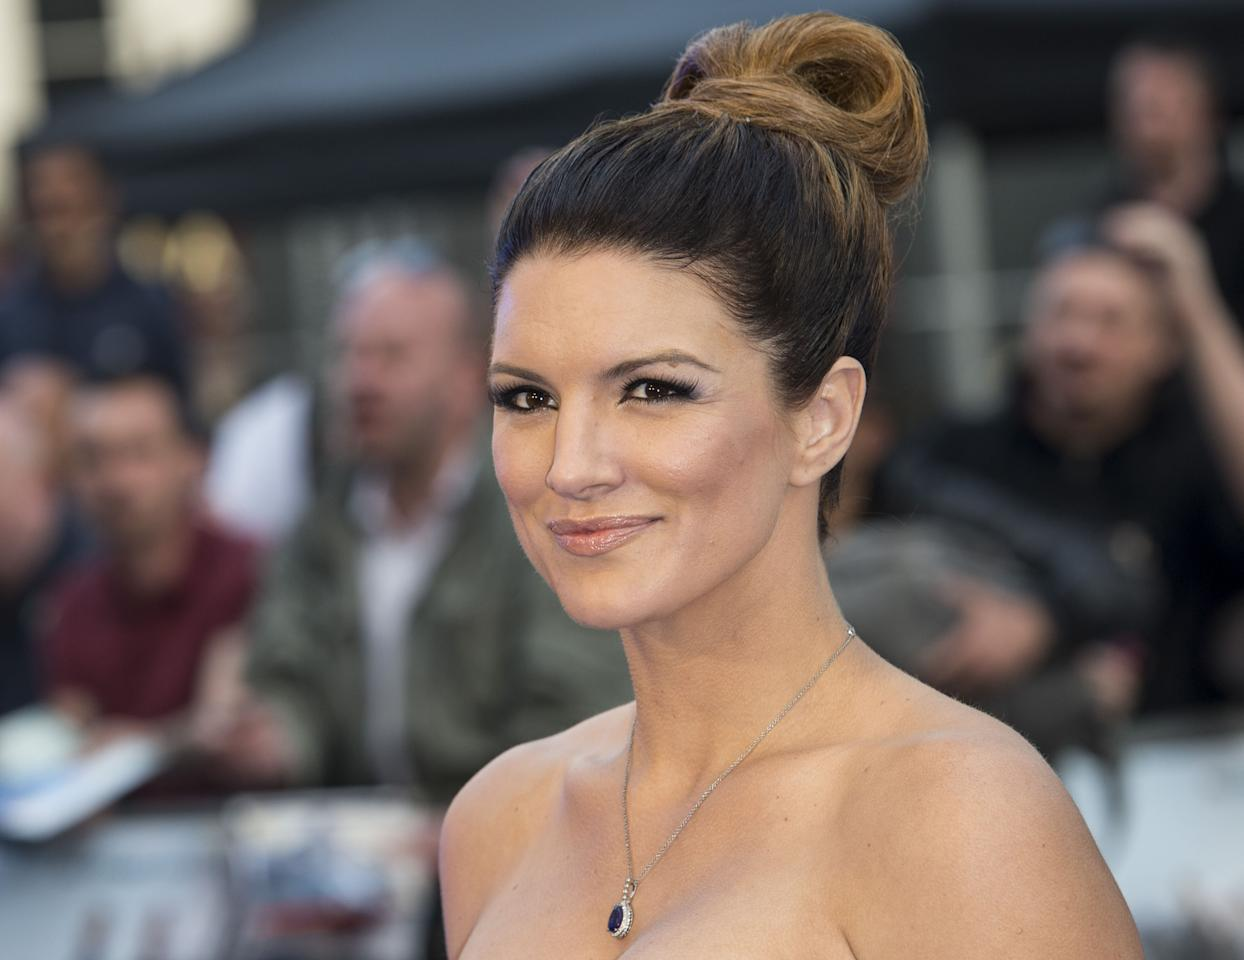 """LONDON, ENGLAND - MAY 07:  Gina Carano attends the World Premiere of '""""Fast & Furious 6""""' at Empire Leicester Square on May 7, 2013 in London, England.  (Photo by Mark Cuthbert/UK Press via Getty Images)"""